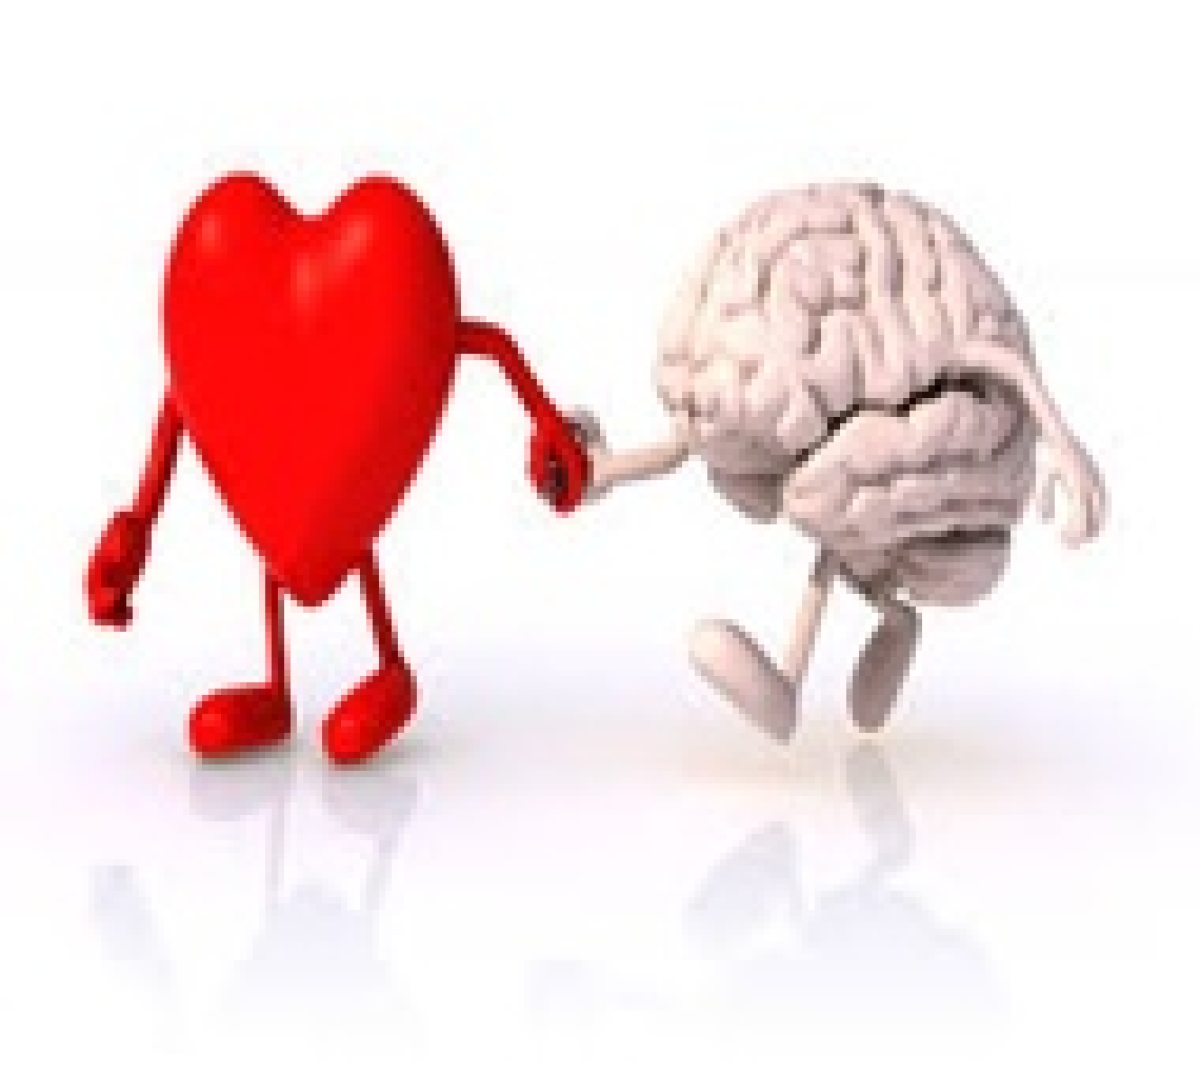 Heart and mind unite to make you wise